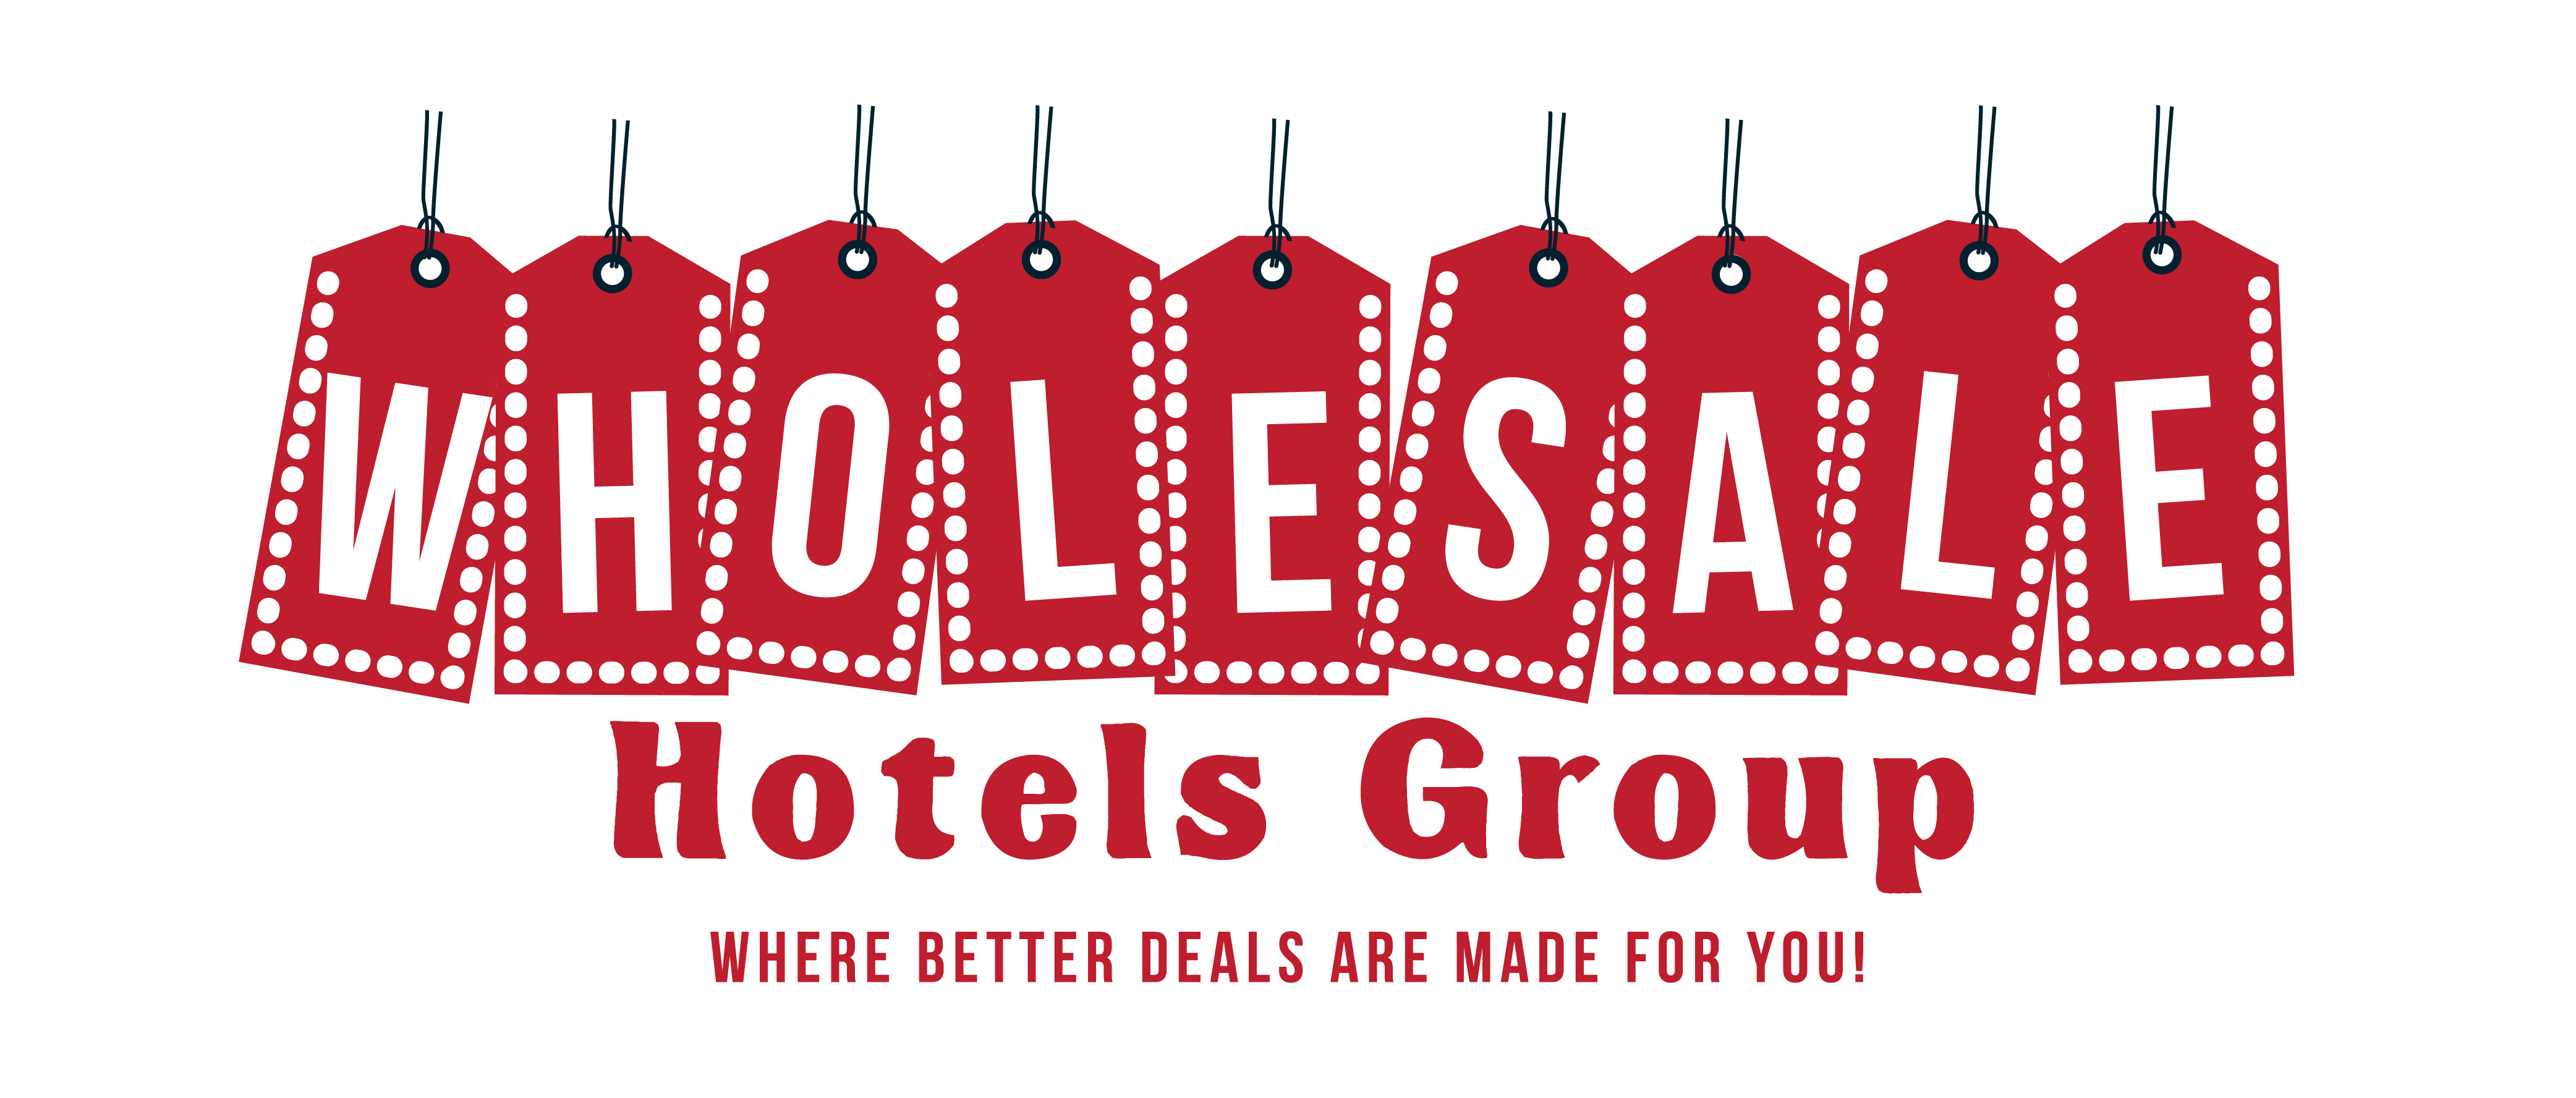 Wholesale Hotels Group - Wholesale Hotel Rooms